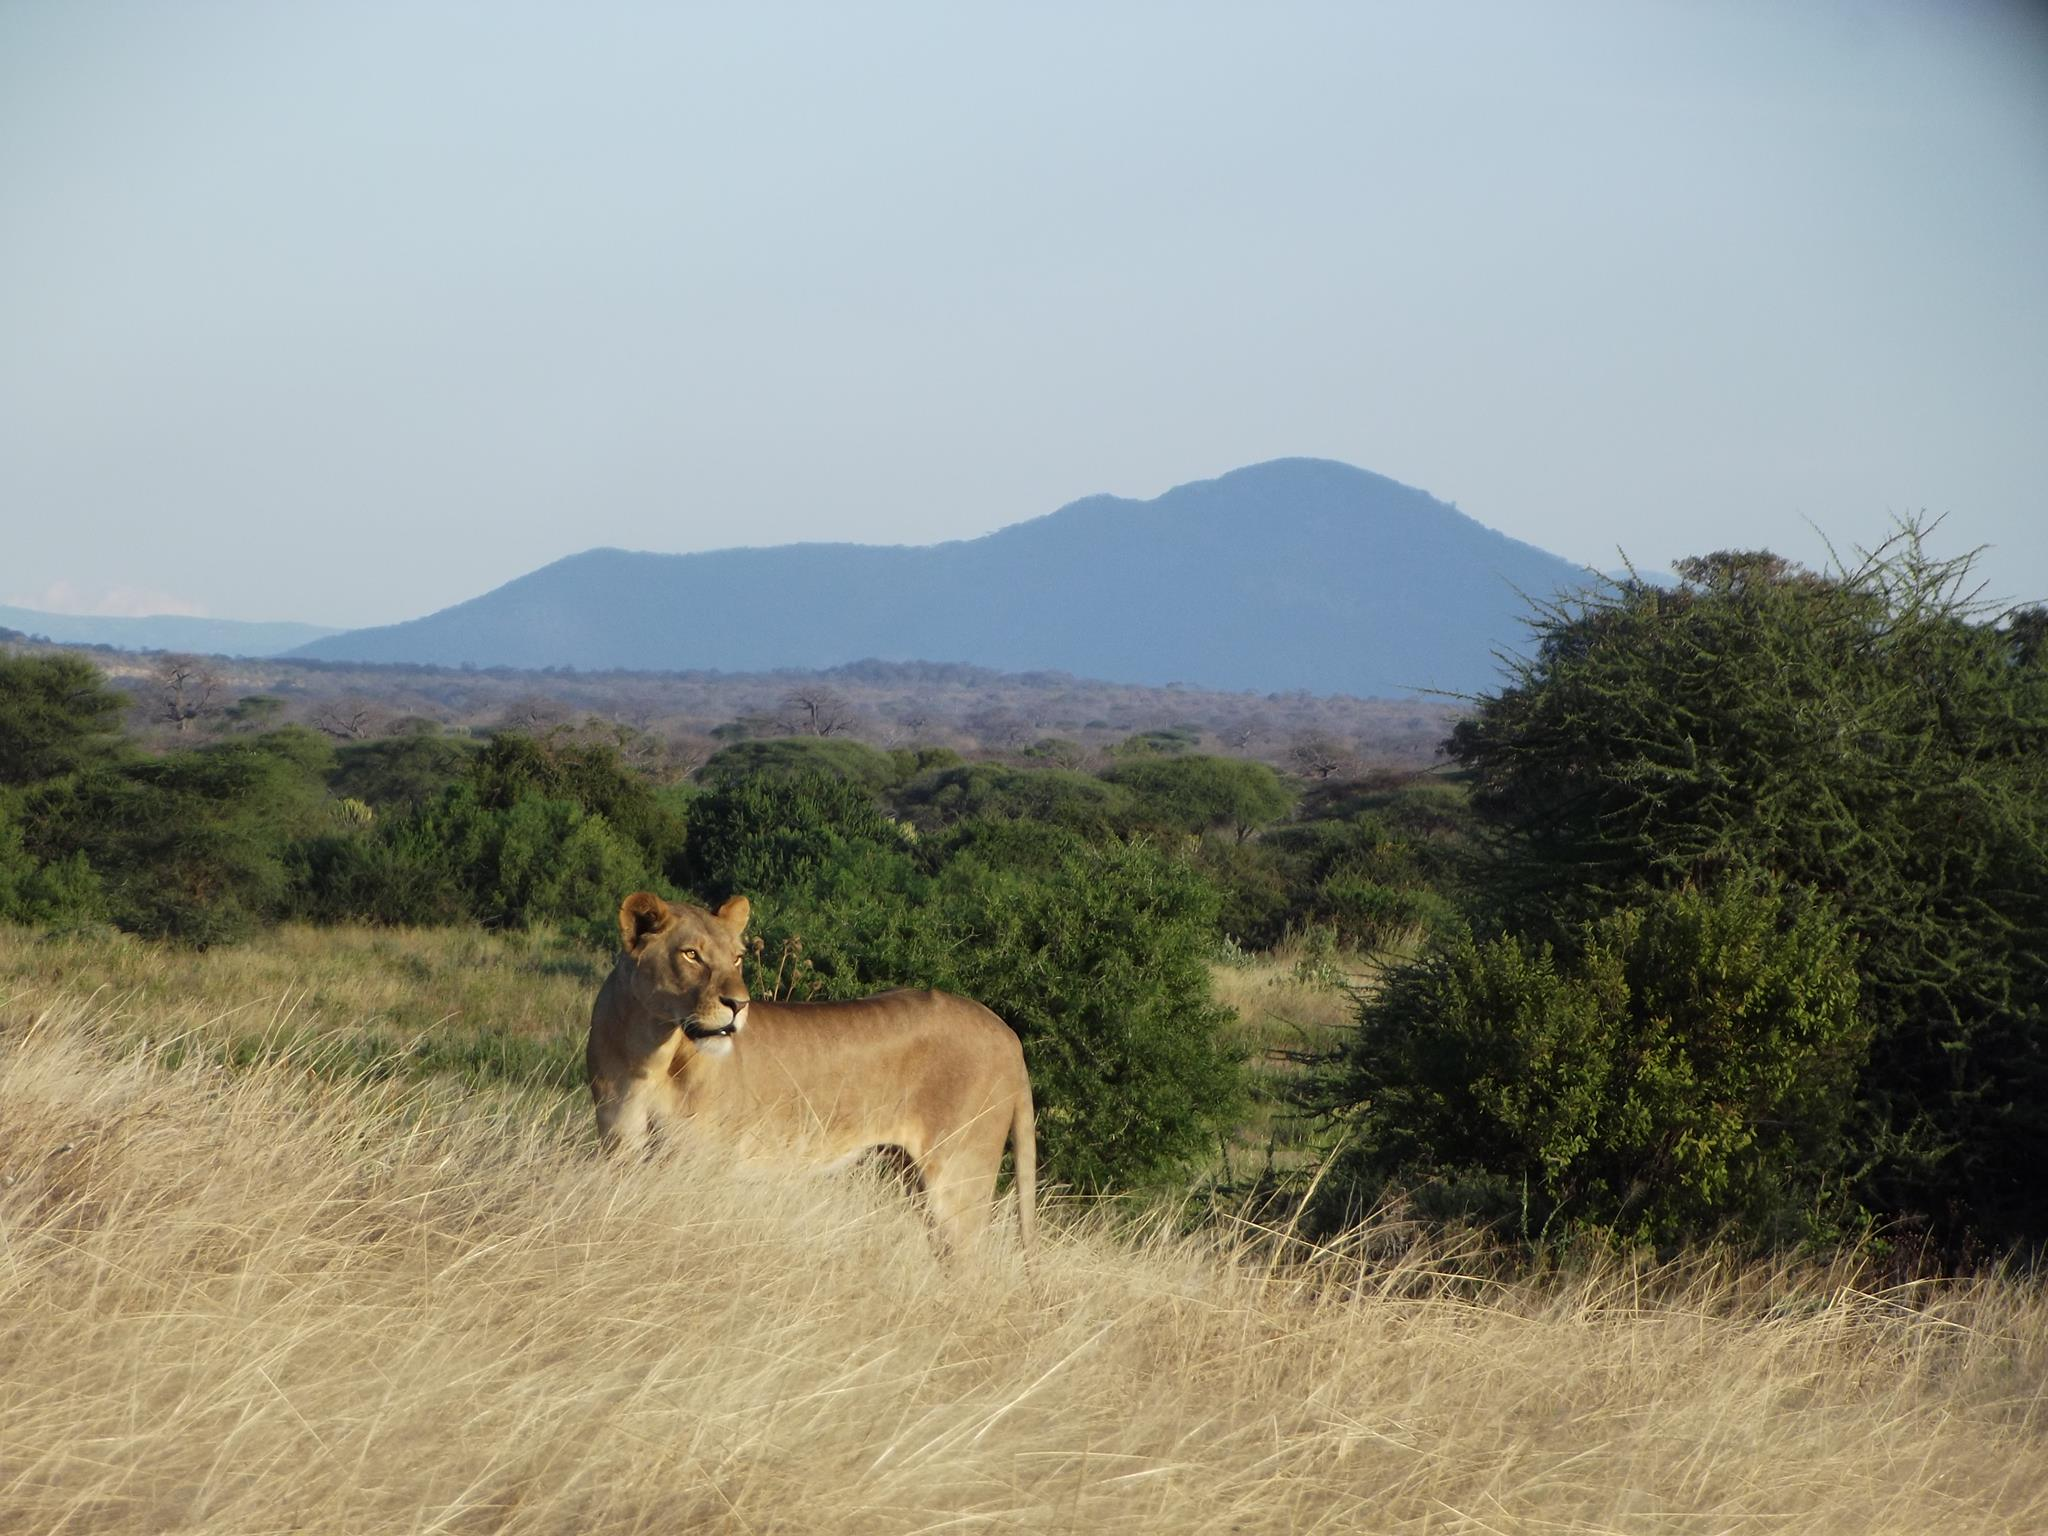 Lion in Ruaha region of Tanzania (Photo: Ruaha Carnivore Project)